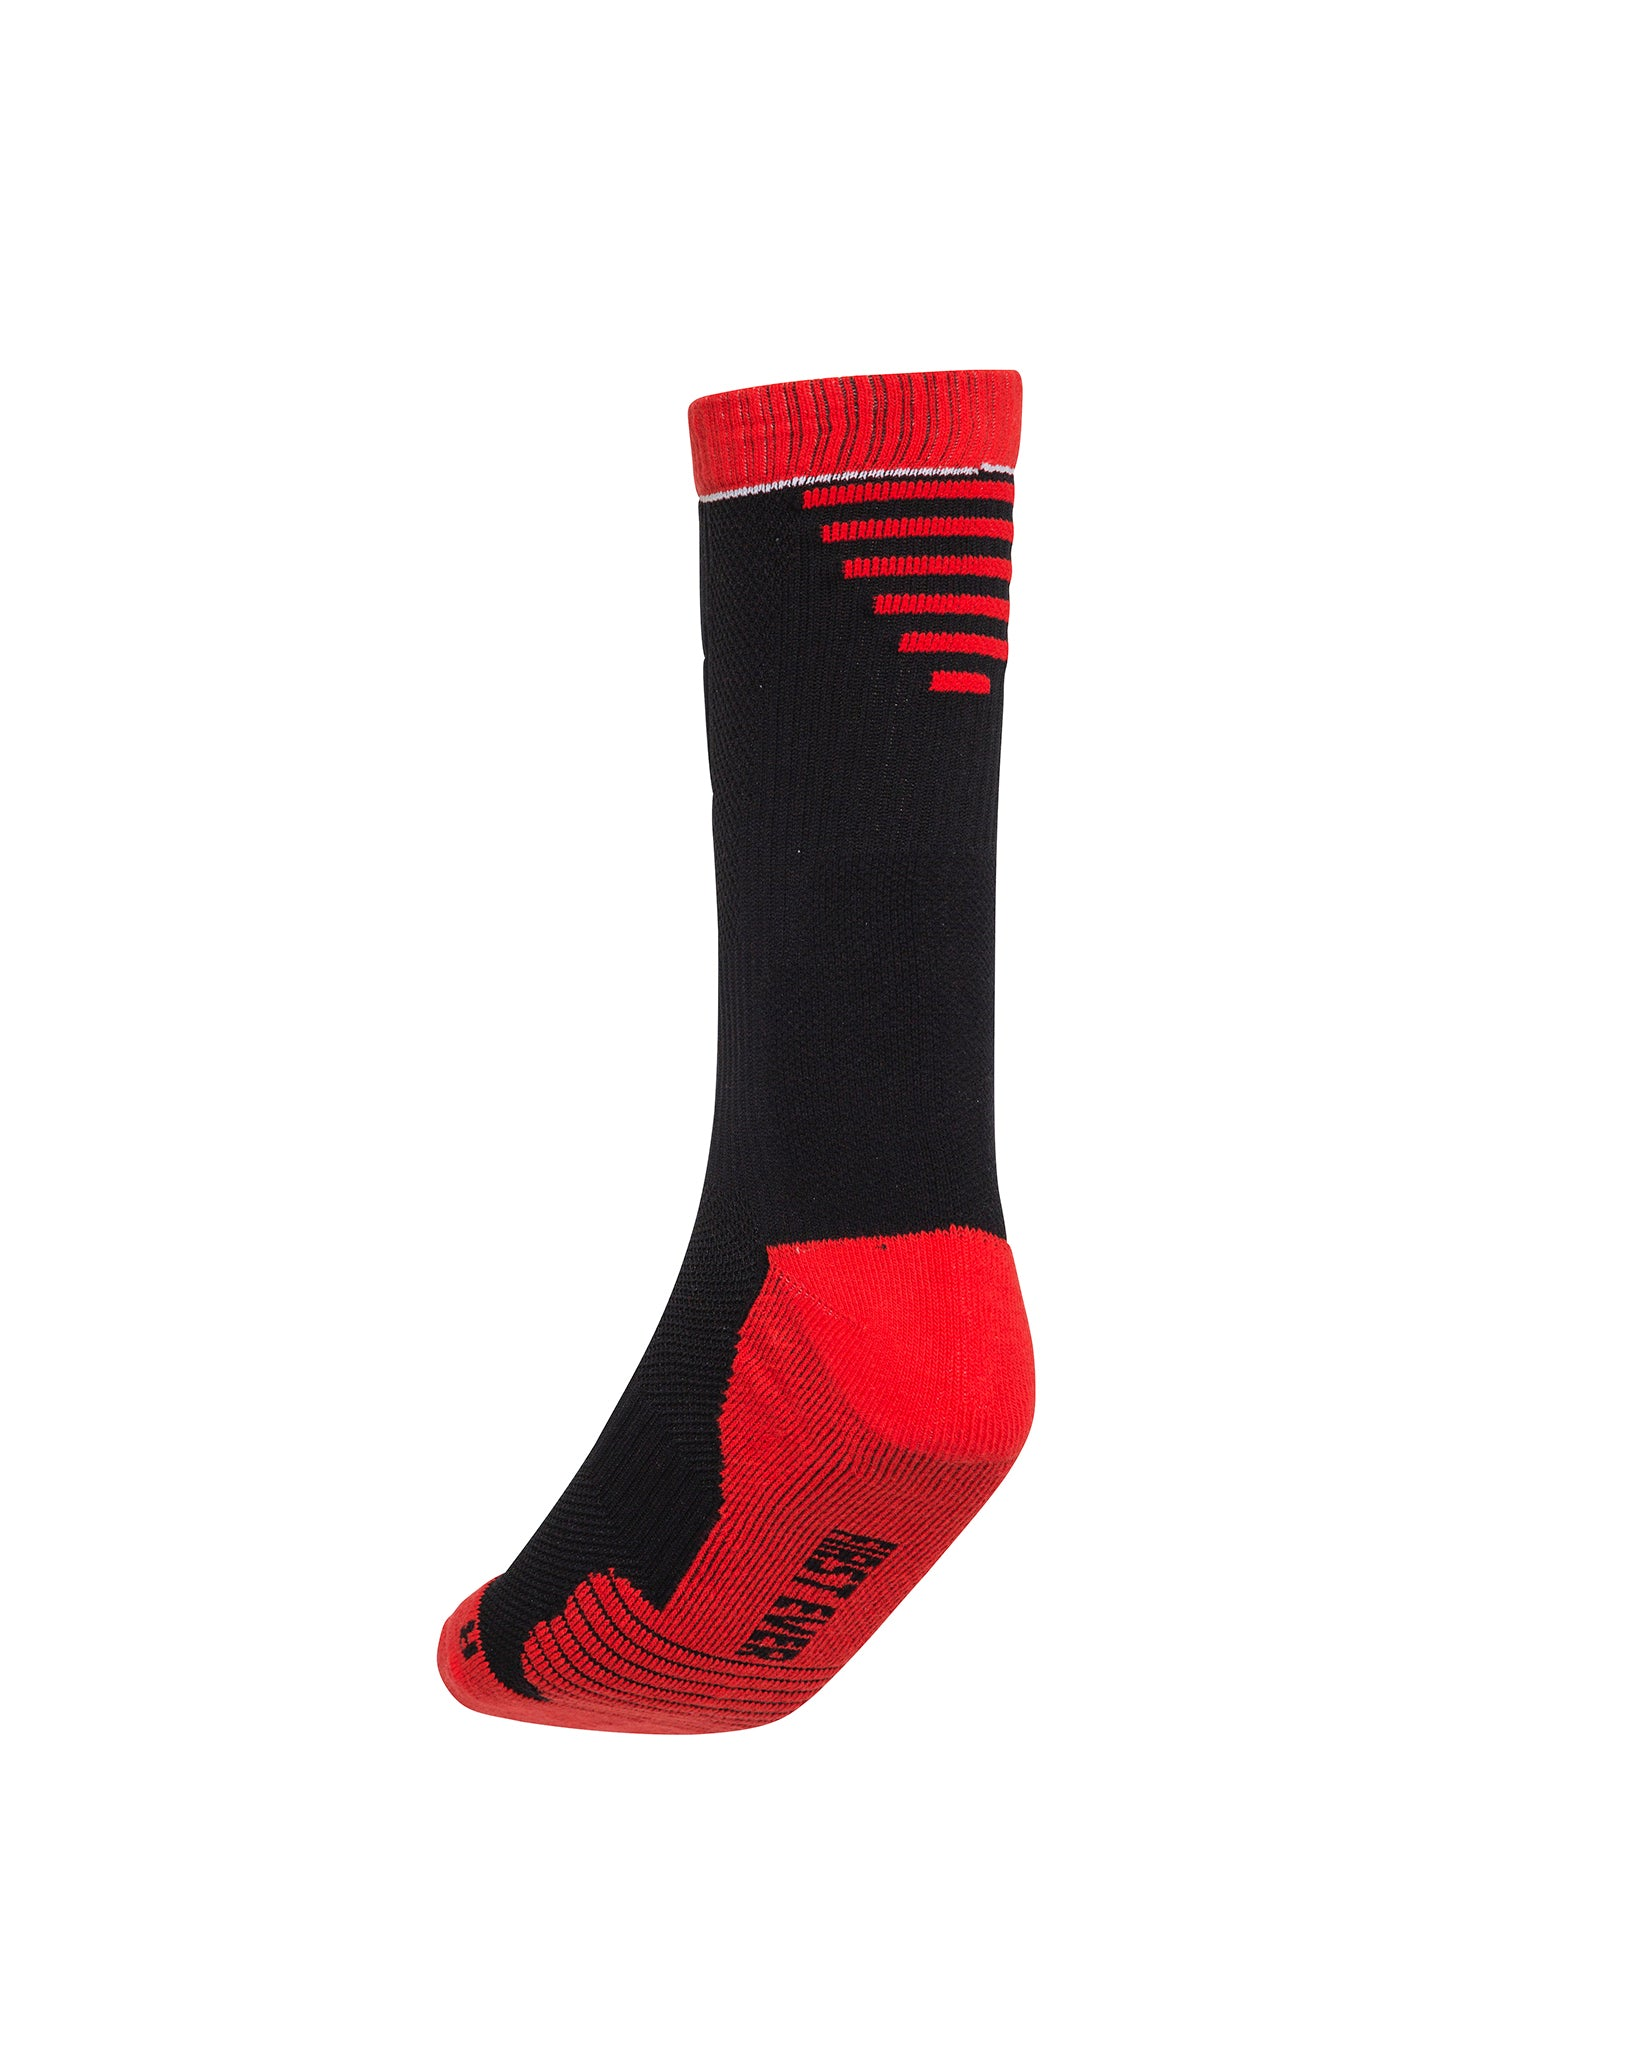 Perth Wildcats 19/20 Official NBL Home Socks